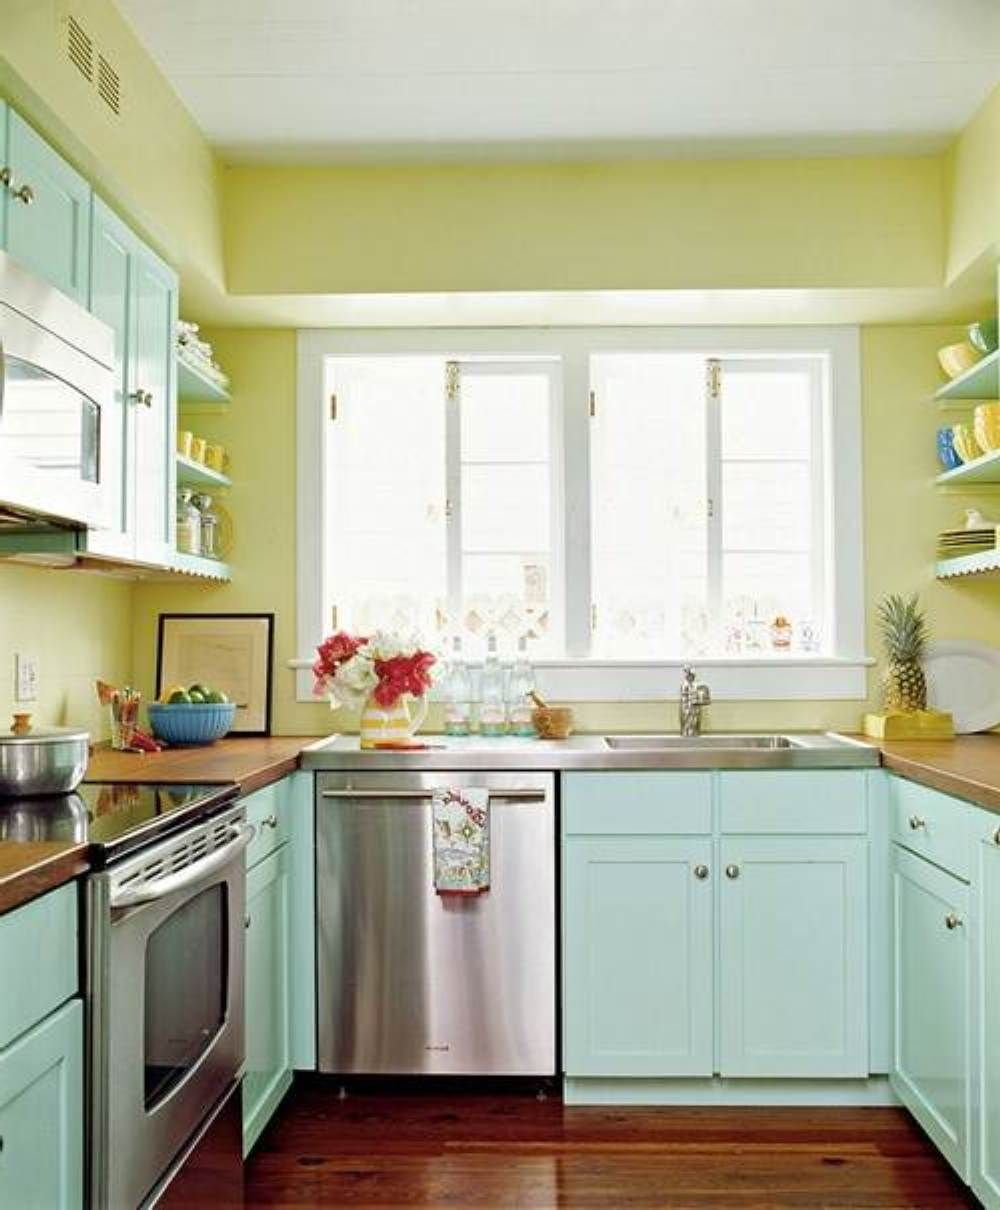 Yellow Paint For Kitchen Walls: Small Kitchen Design Ideas